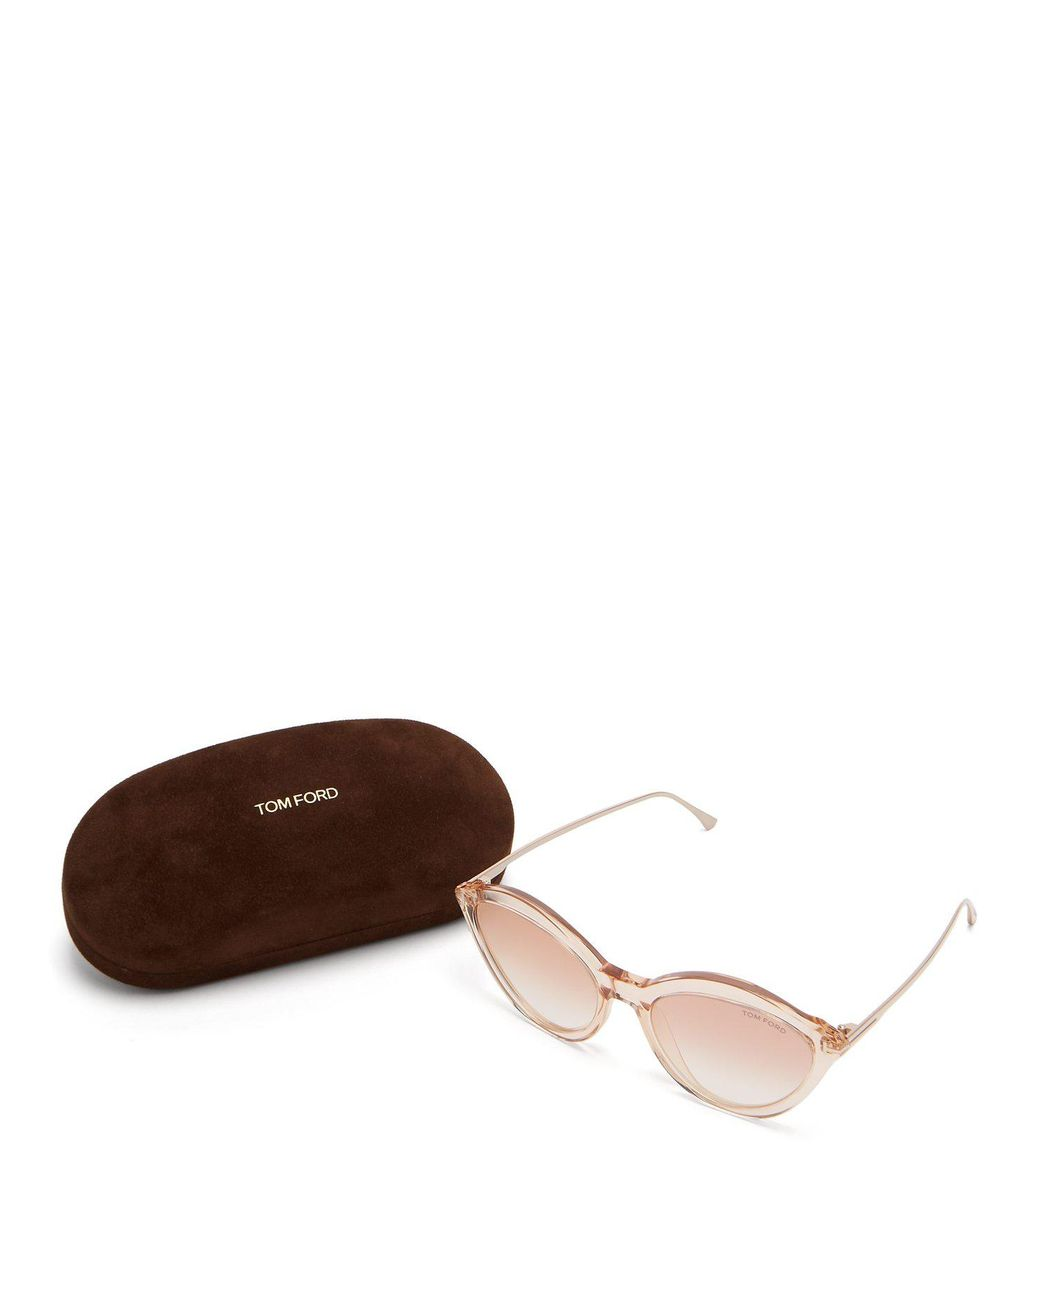 072f2aff9a669 Tom Ford Slater Cat Eye Acetate Sunglasses in Brown - Lyst